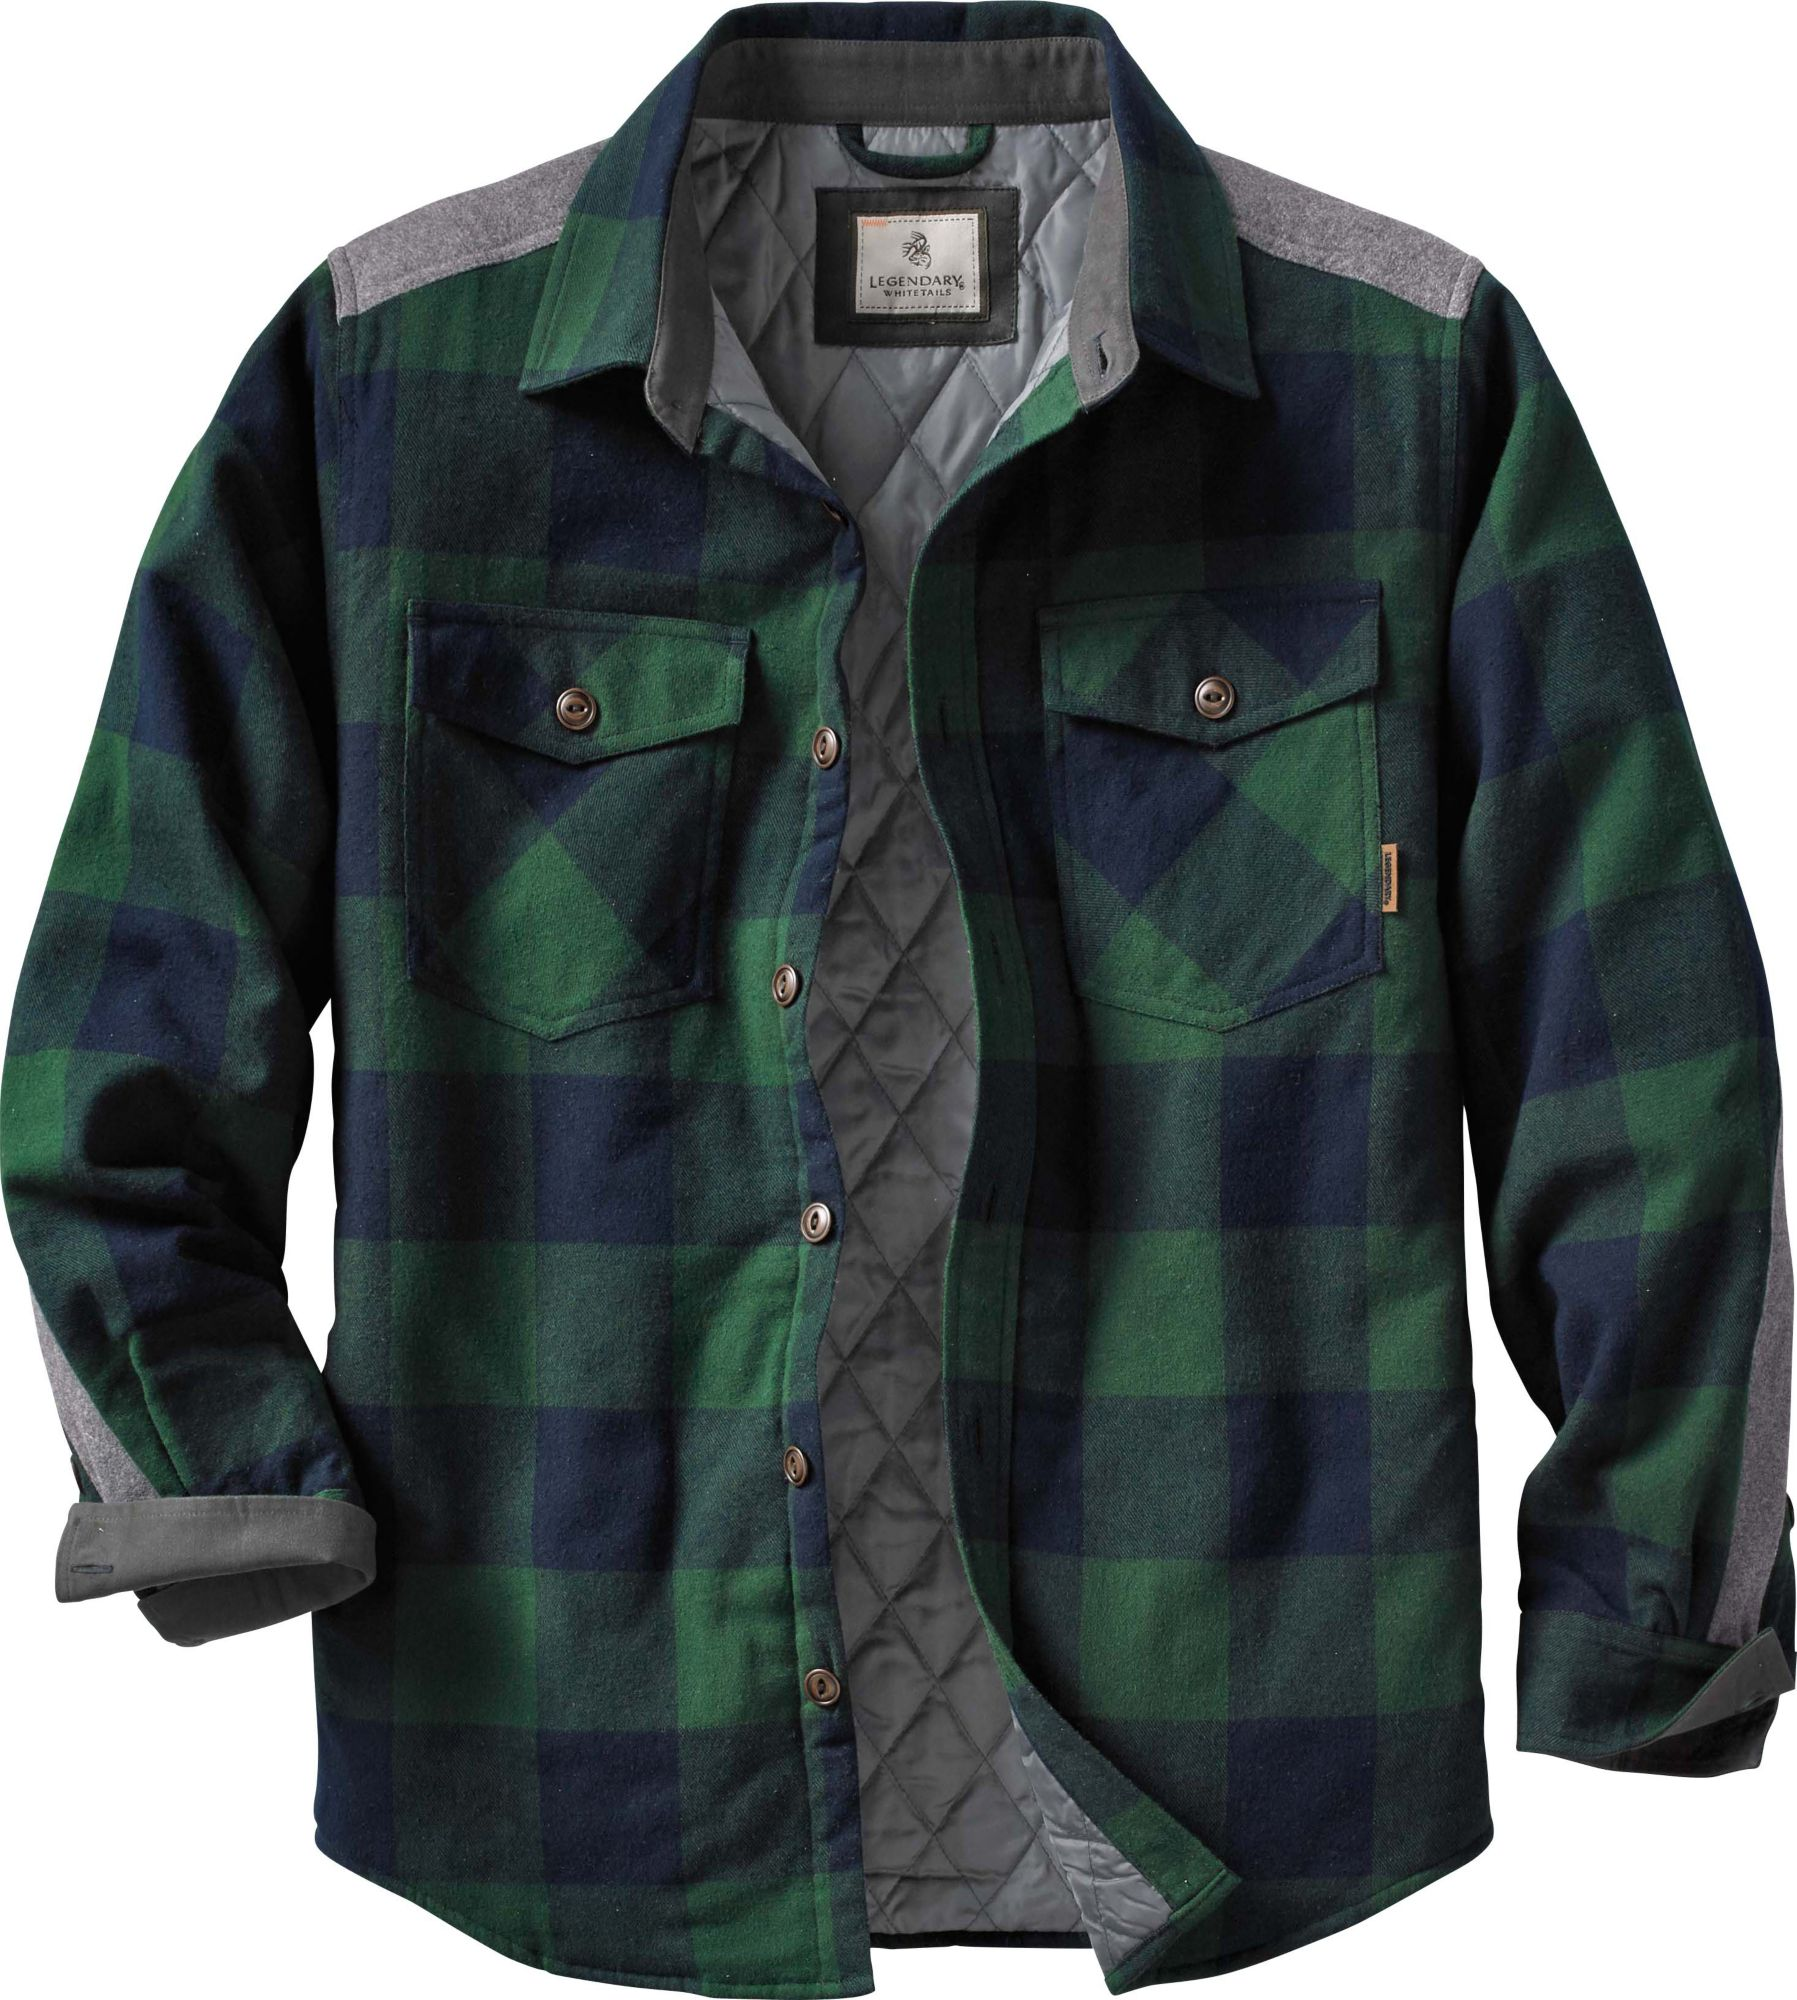 flannel quilt comfy products jackets shirt quilted mystery all jacket warm lined soft sizes